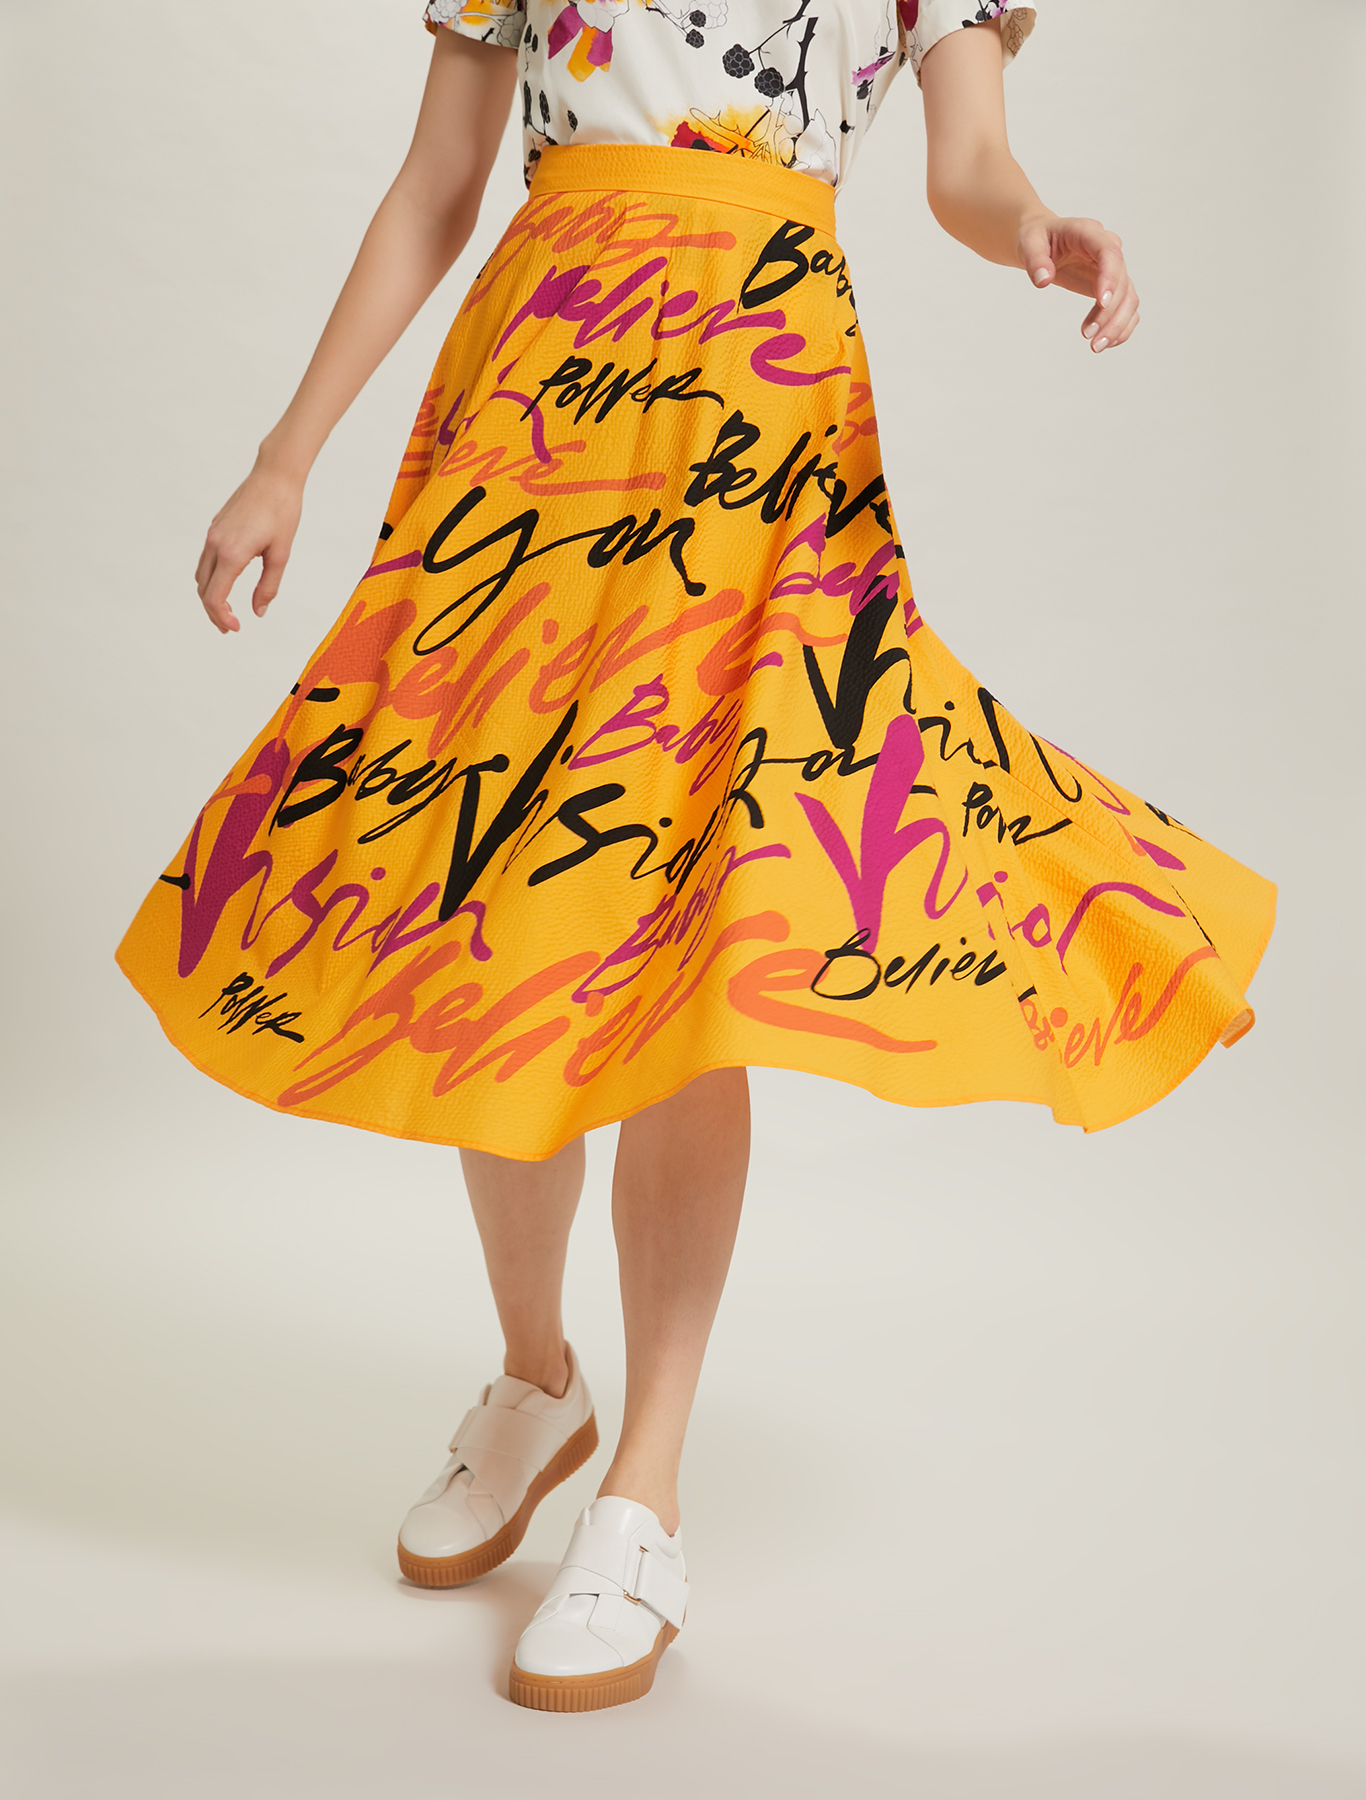 Sunset Road full skirt - orange pattern - pennyblack